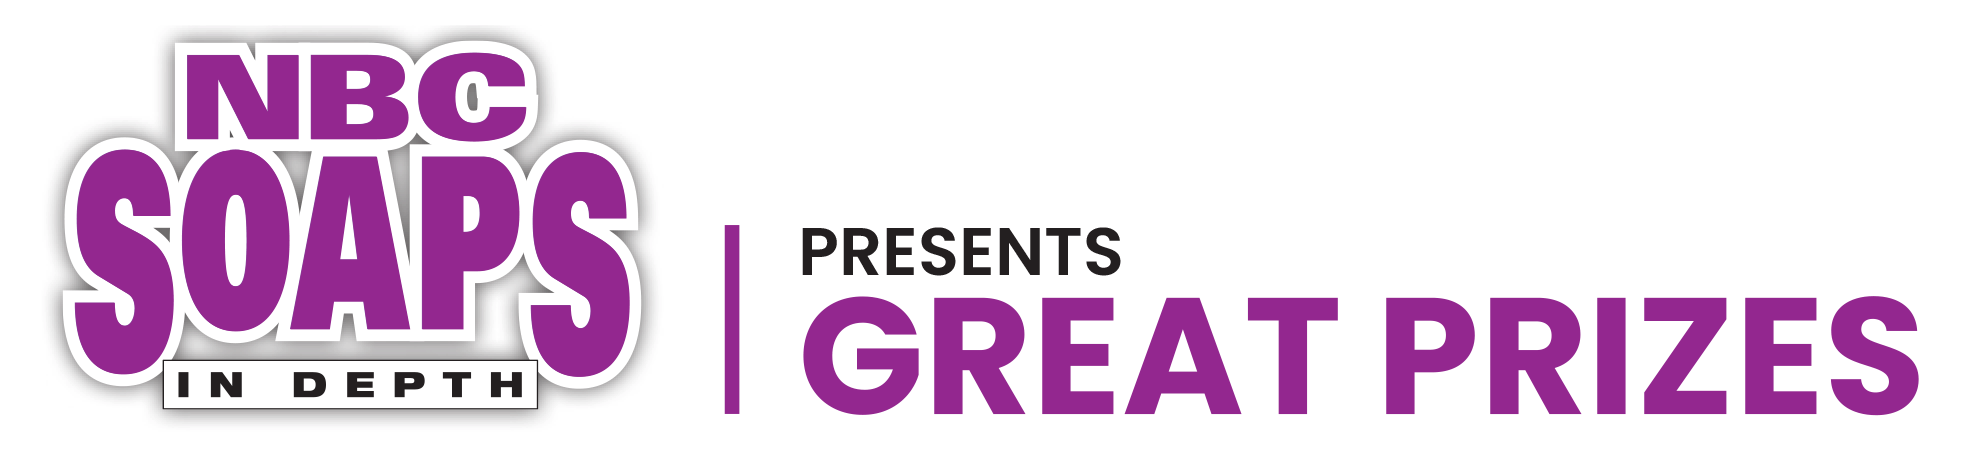 Nbc great wins logo  2